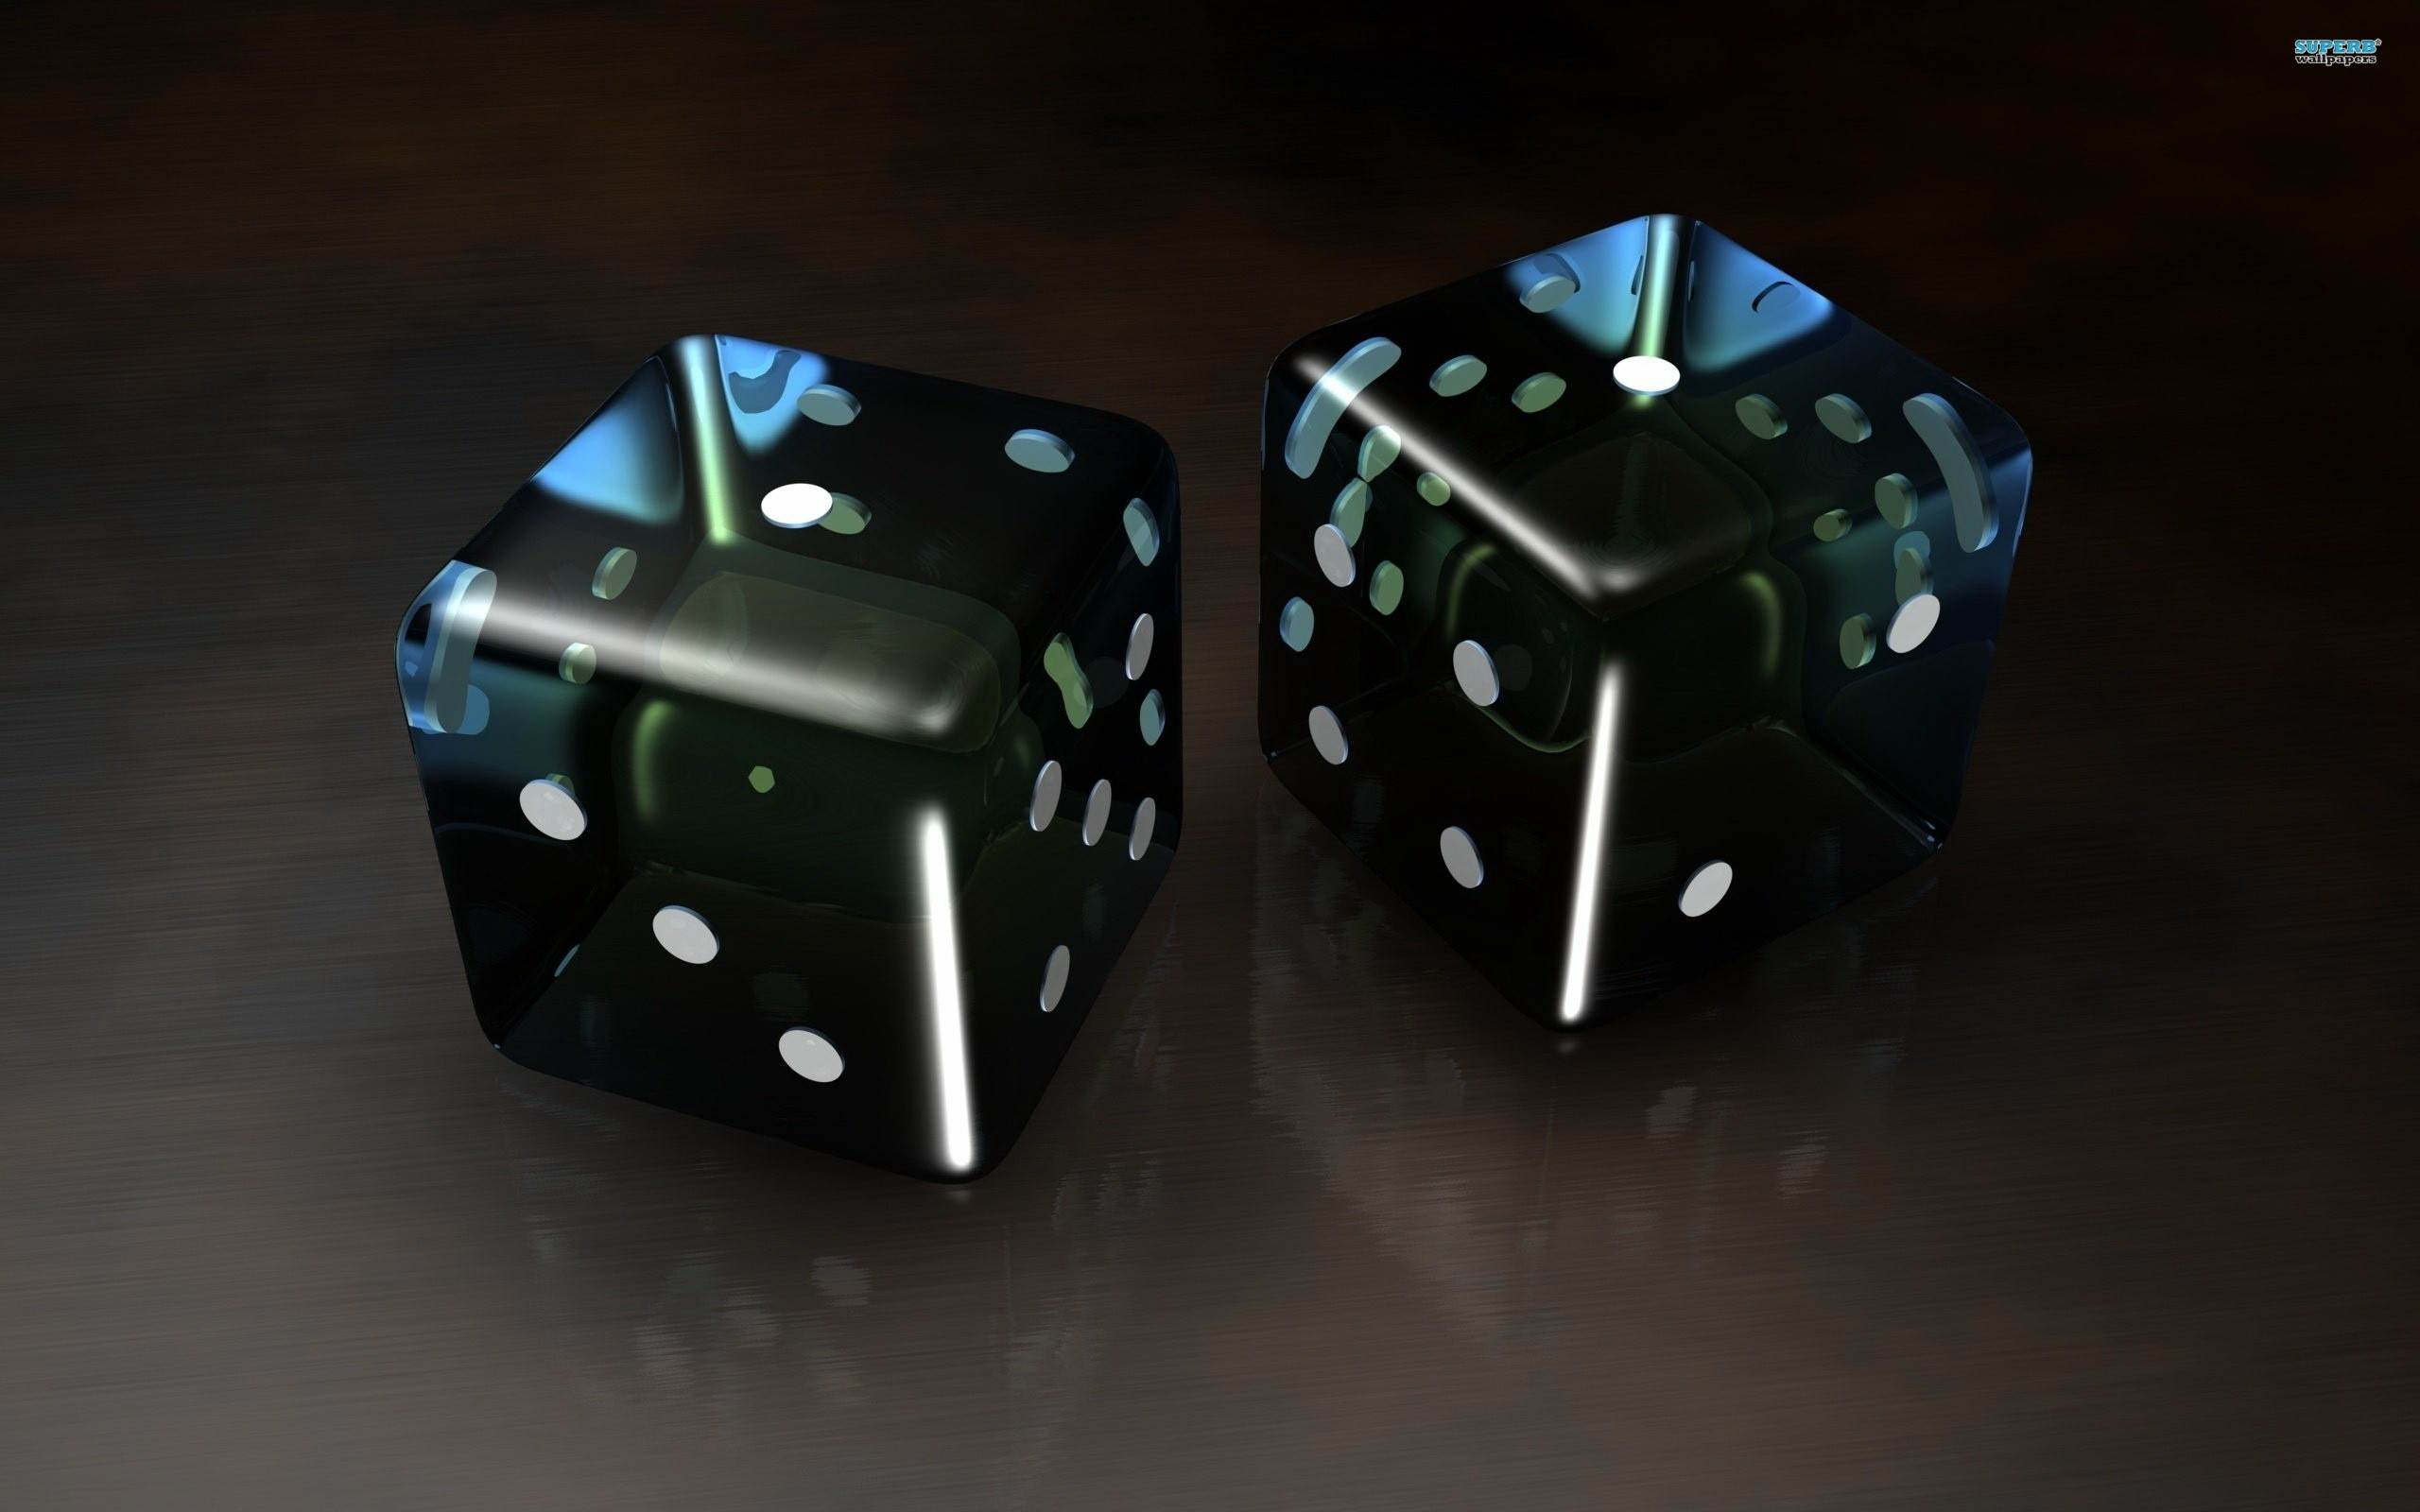 2560x1600 black 3d dice desktop pc and mac wallpaper